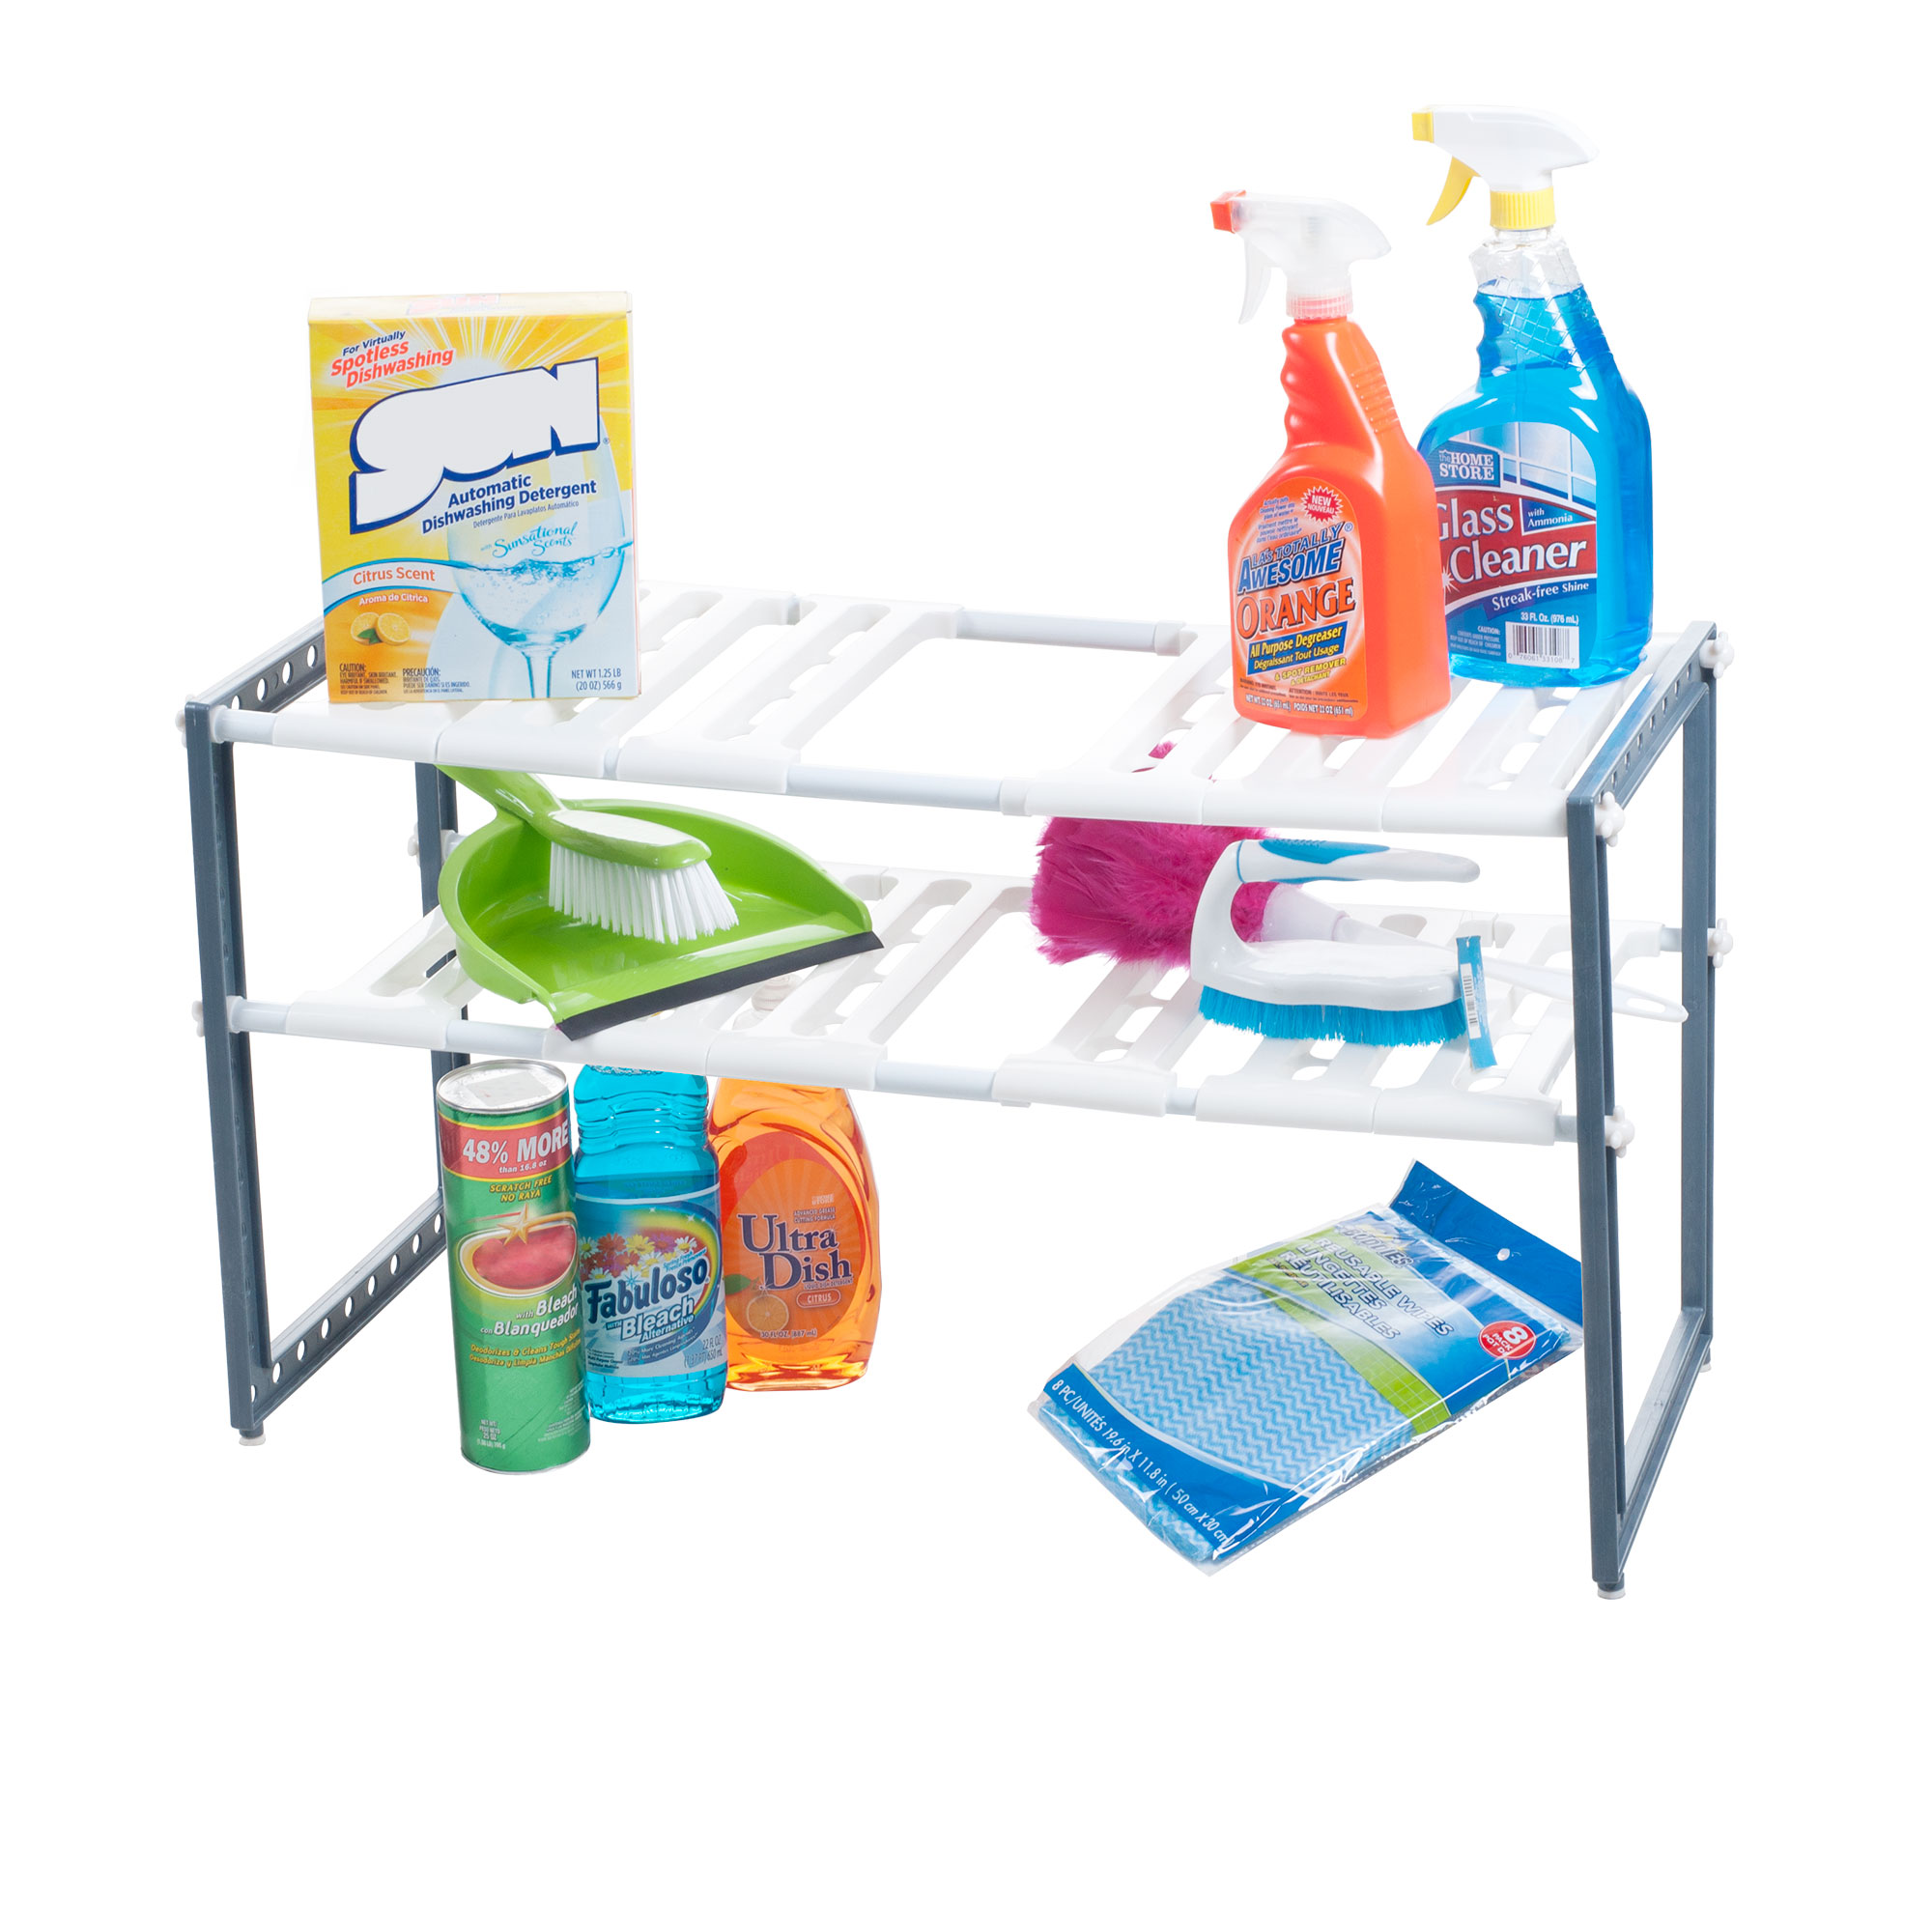 Stalwart 82-50702 Adjustable Under Sink Shelf Organizer Unit